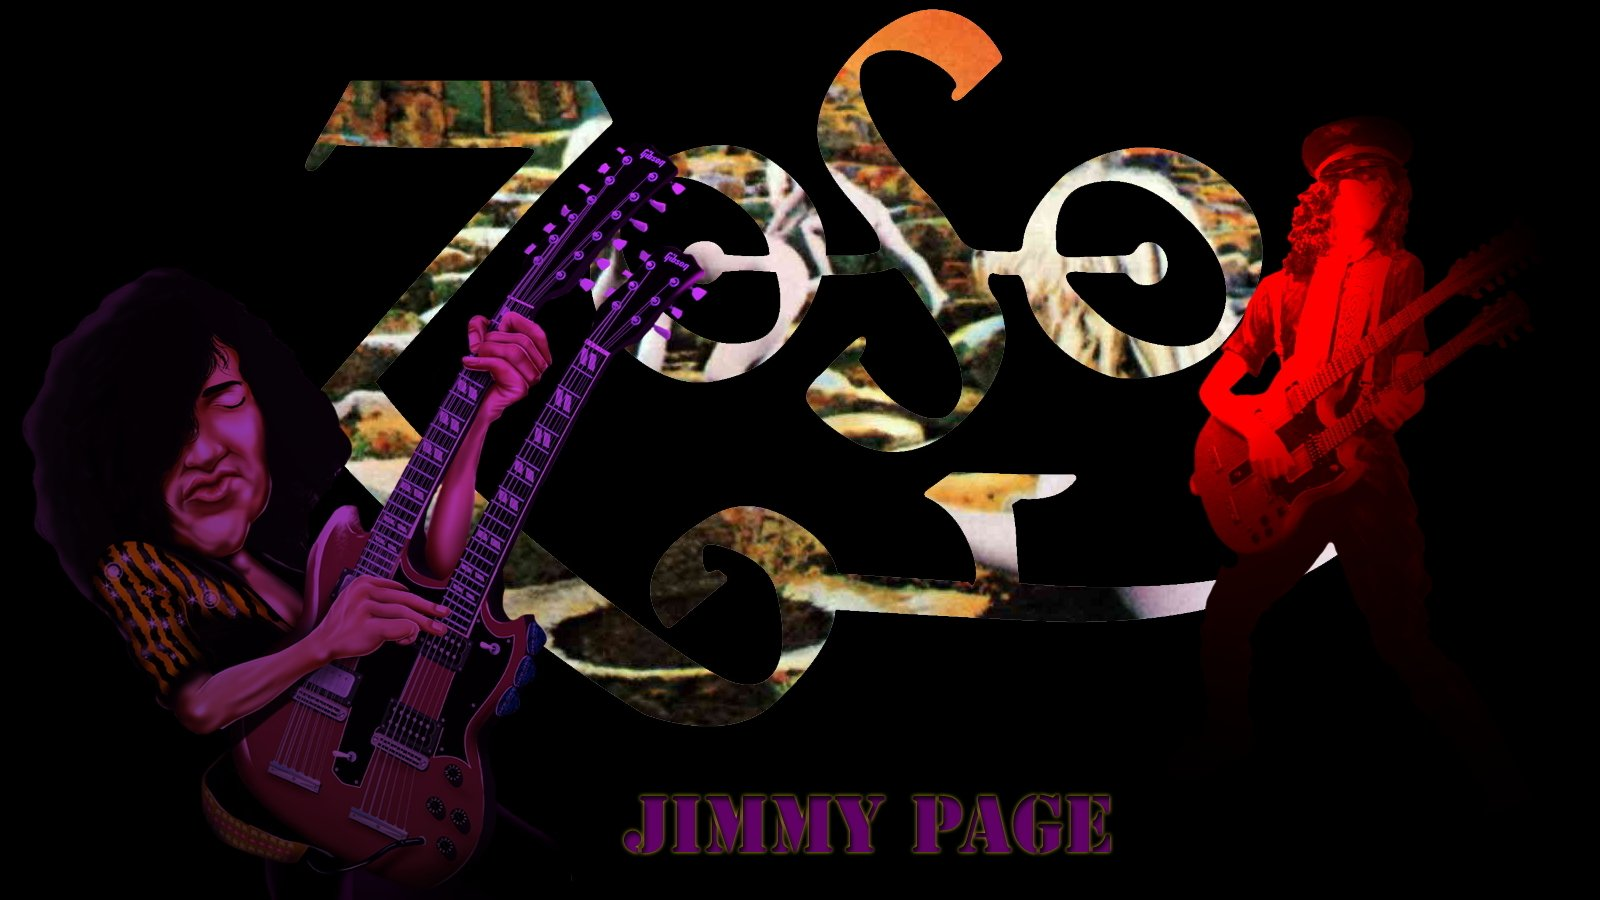 Jimmy Page Wallpaper And Background Image